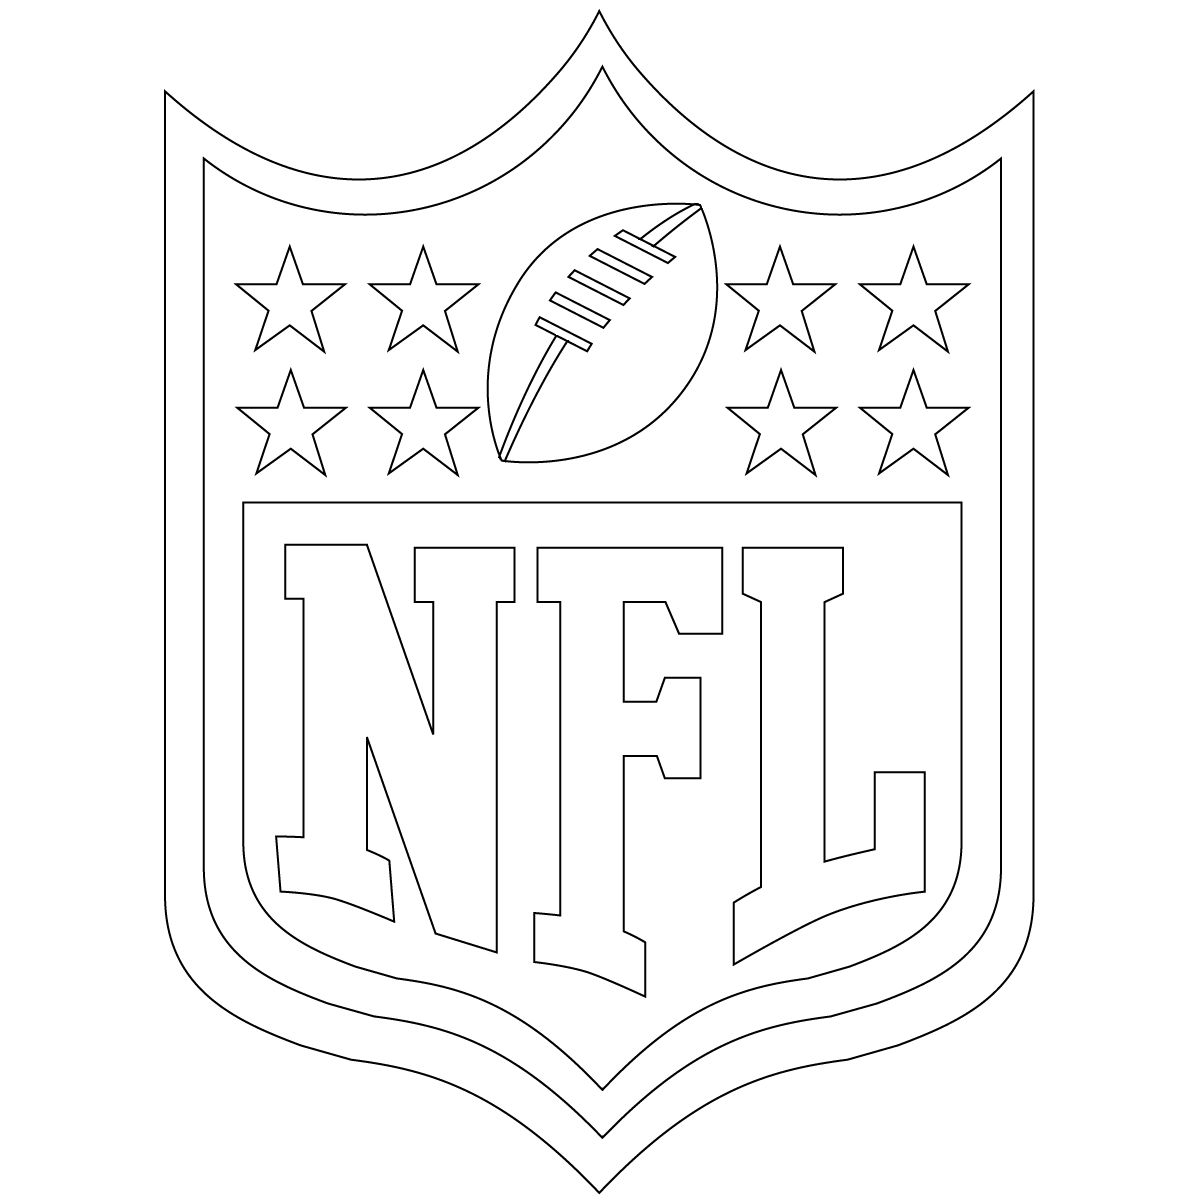 football pictures to print free printable football coloring pages for kids best to print football pictures